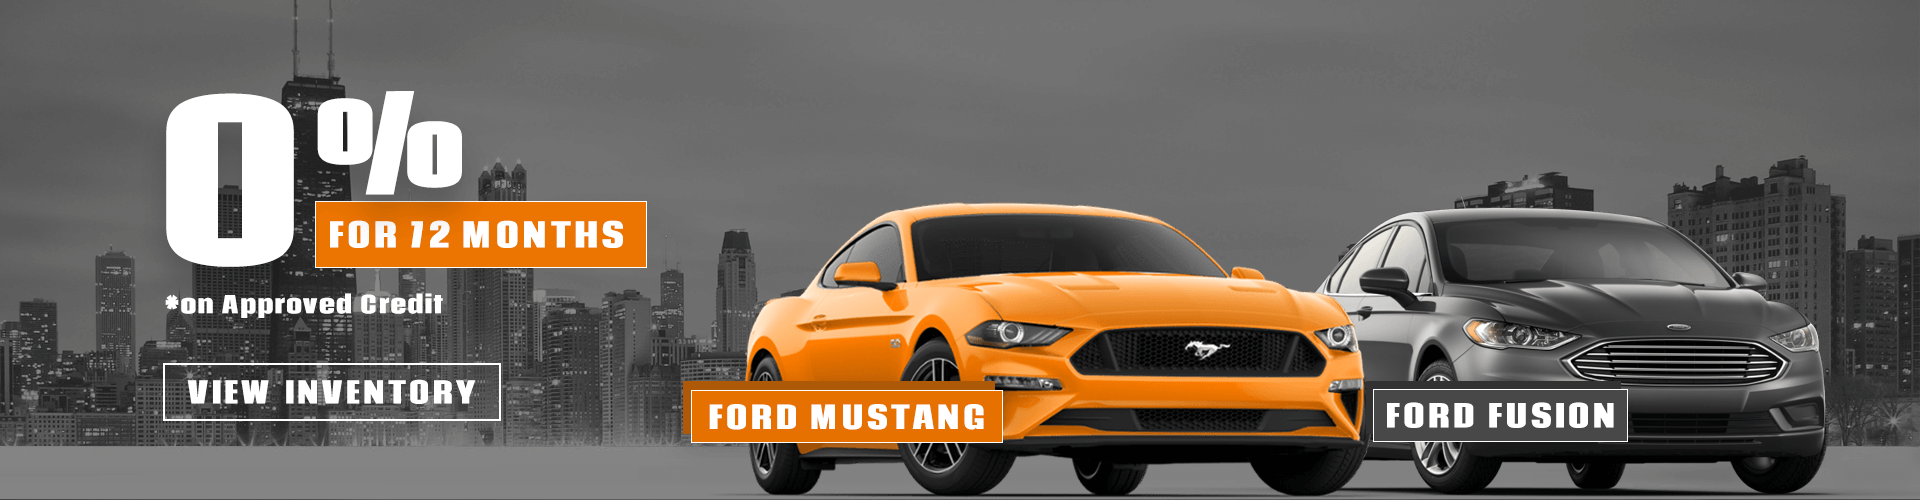 Special offer on 2018 Ford Fusion 2018 Ford Mustang and Ford Fusion